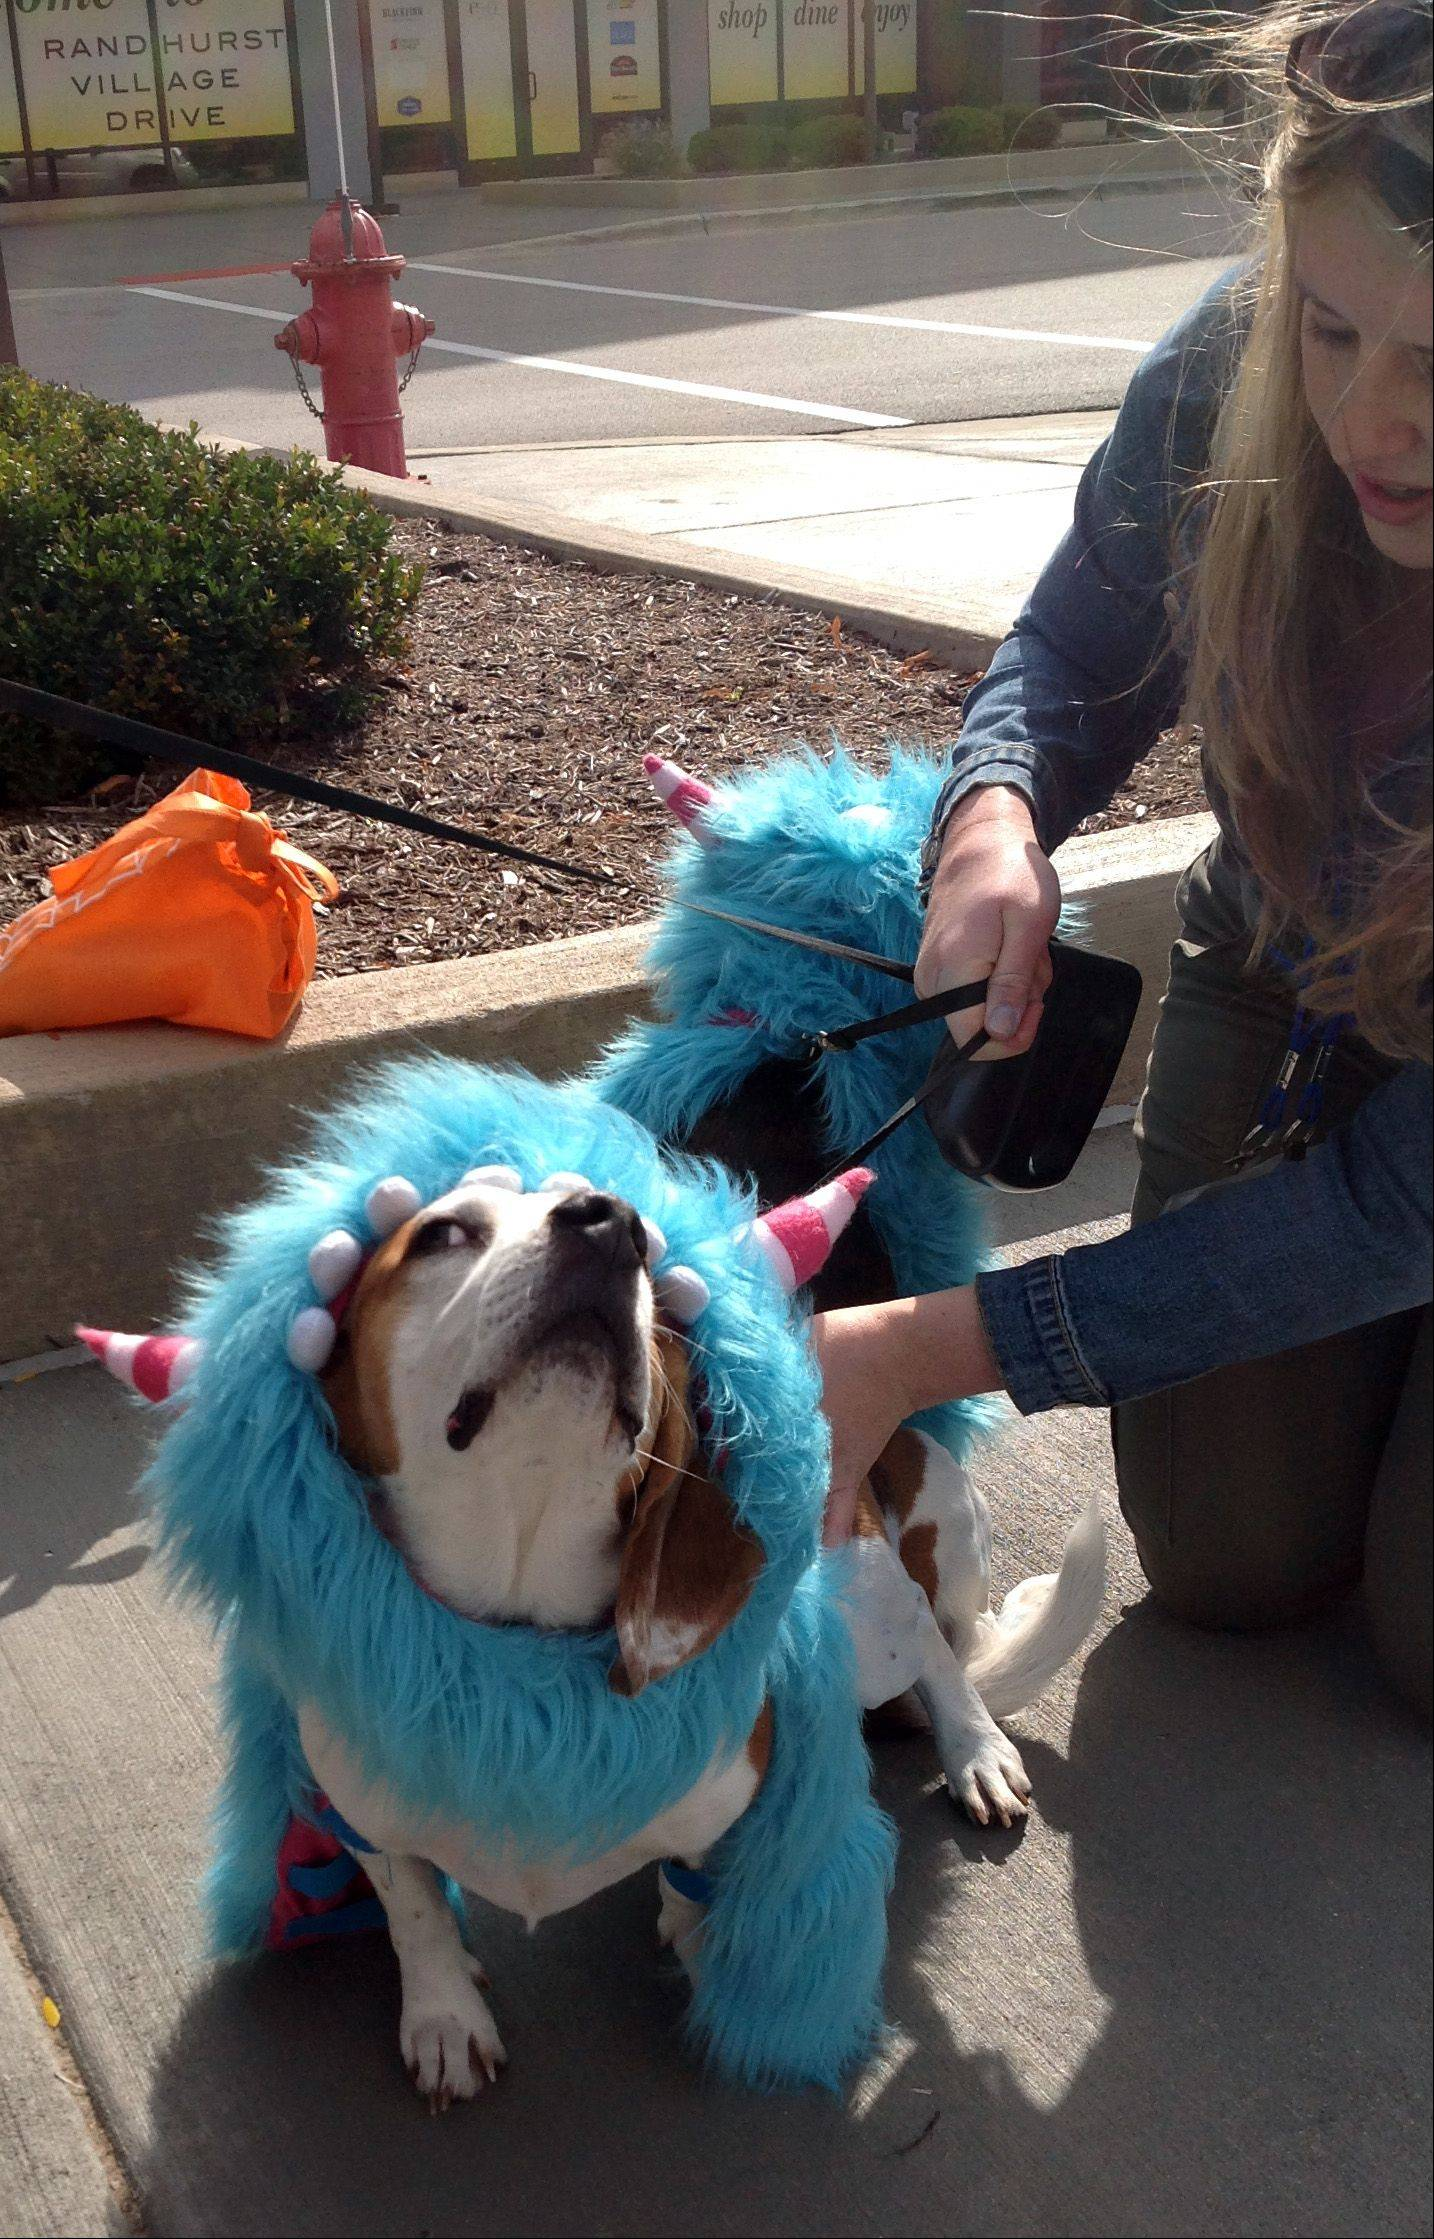 Duke, left, and Chance, two beagles from Fox River Grove, came dressed as little monsters and were the overall winners of a costumed pet parade held Saturday at Randhurst Village and sponsored by the Daily Herald. The parade kicked off the free Hoots and H'owls Halloween event.